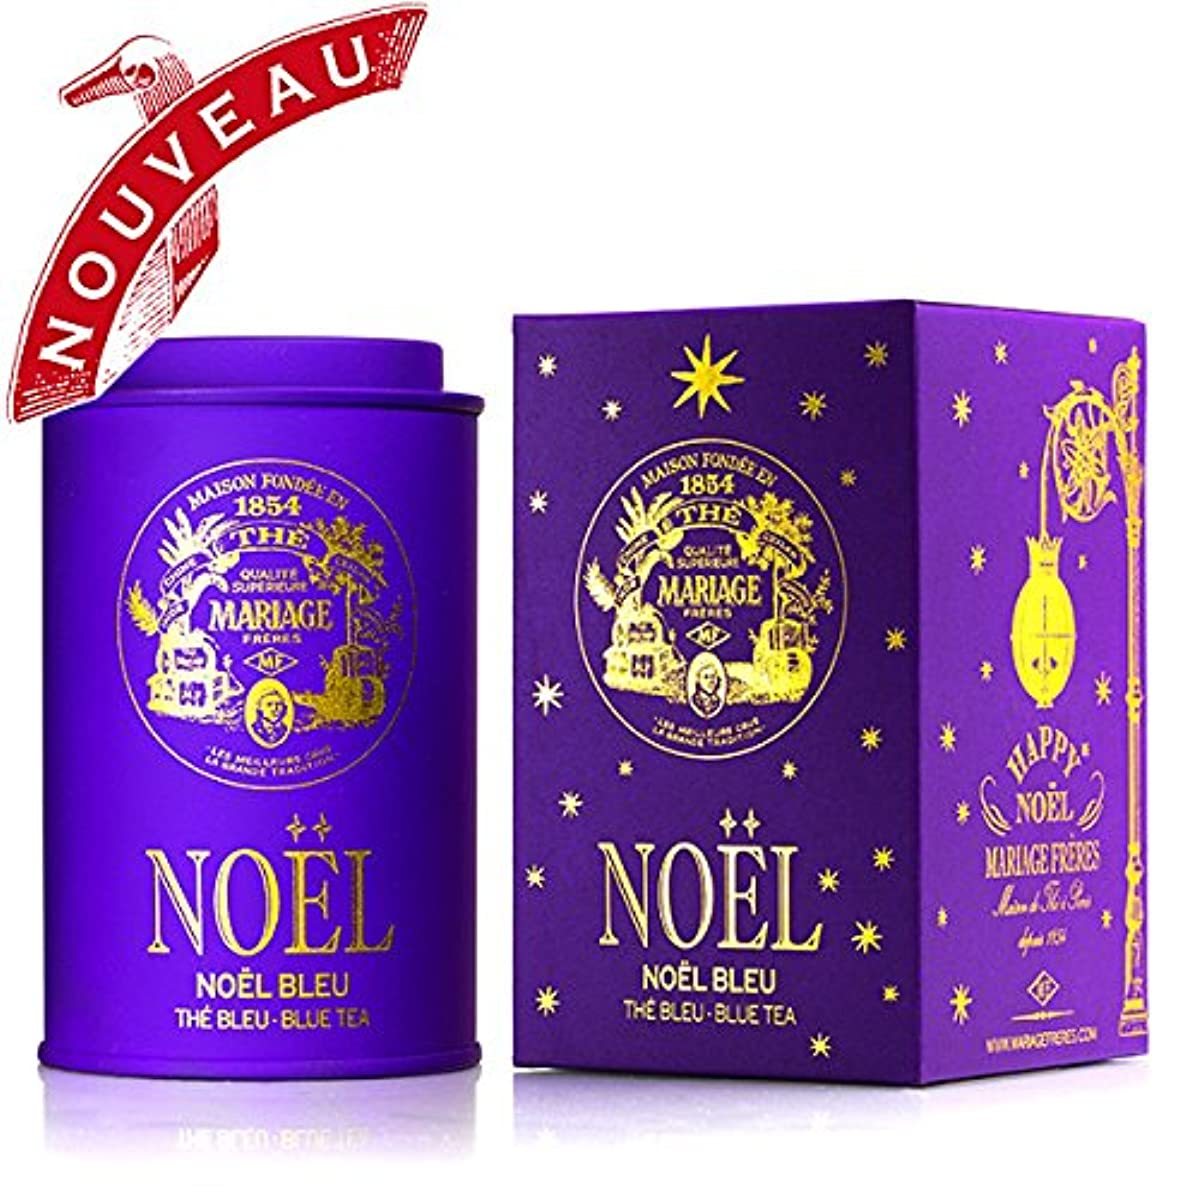 Mariage Frères - NO?L BLEU - HAPPY NO?L (new) - Limited edition - 2.47oz / 70gr canister / tin